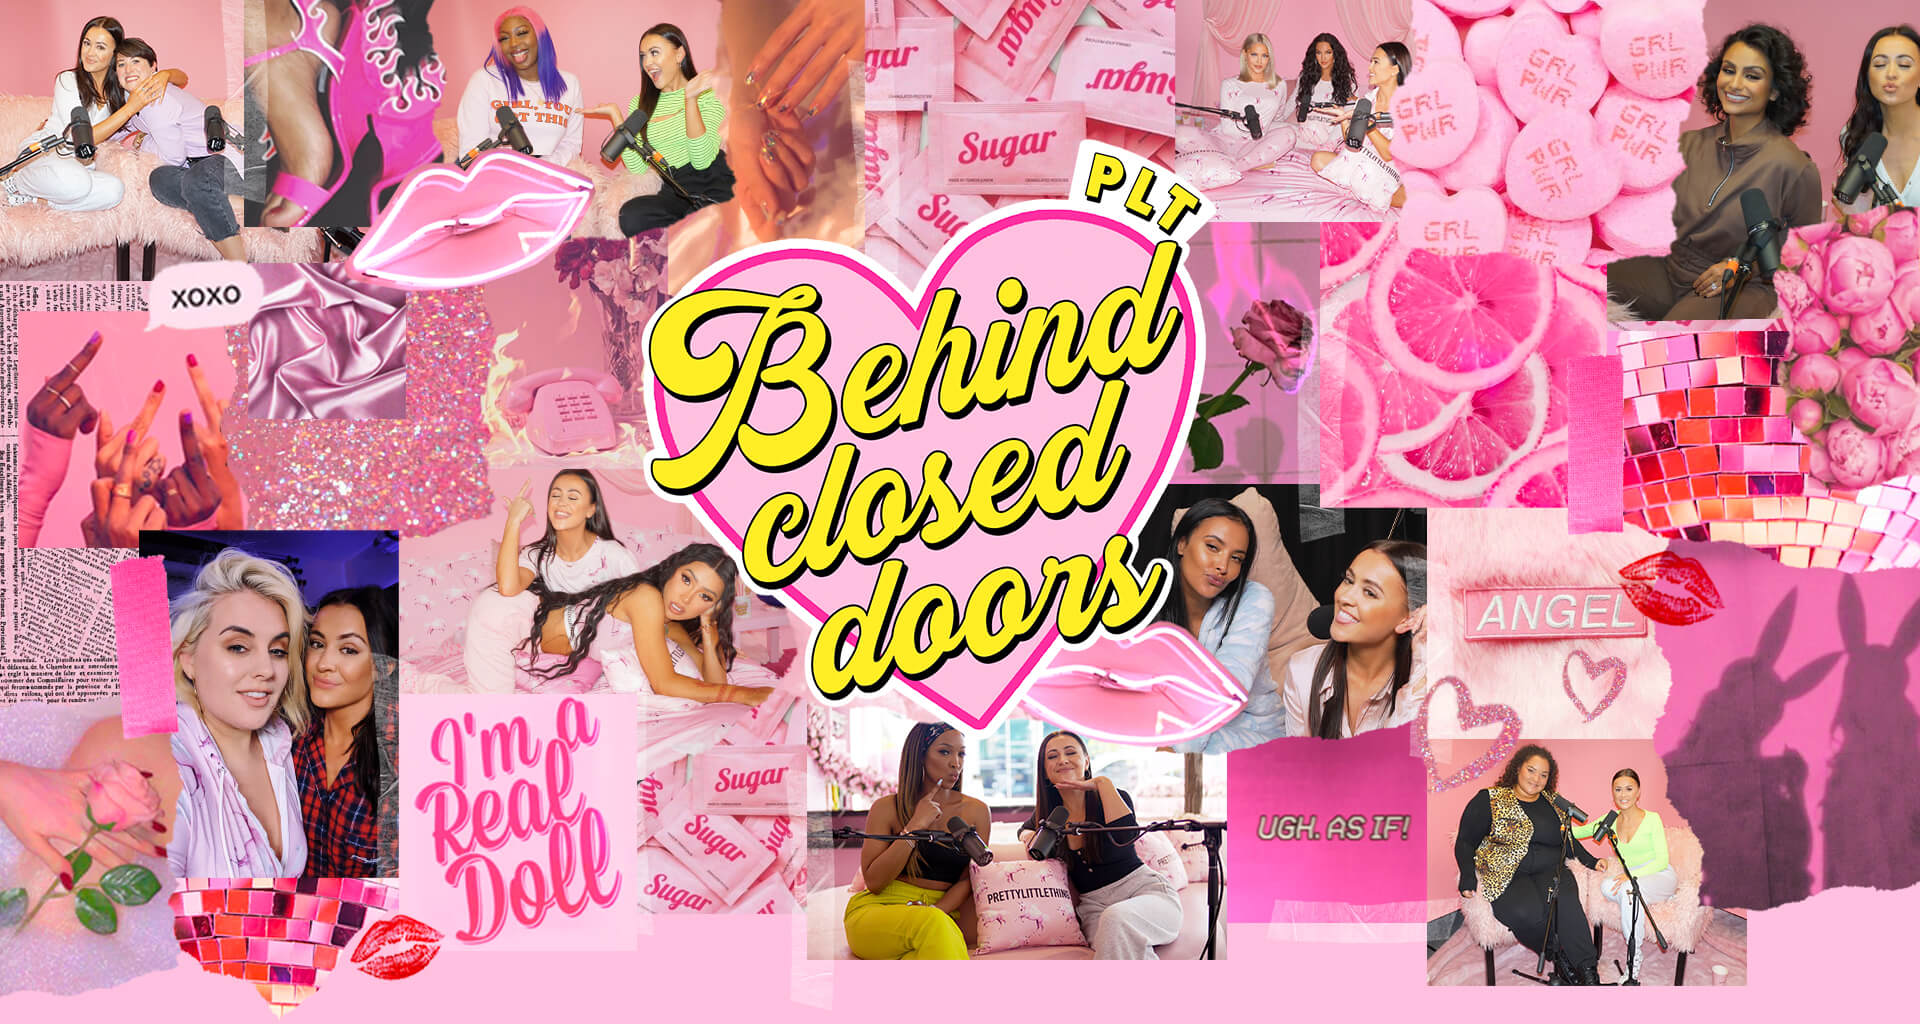 Behind Closed Doors Splash Desktop